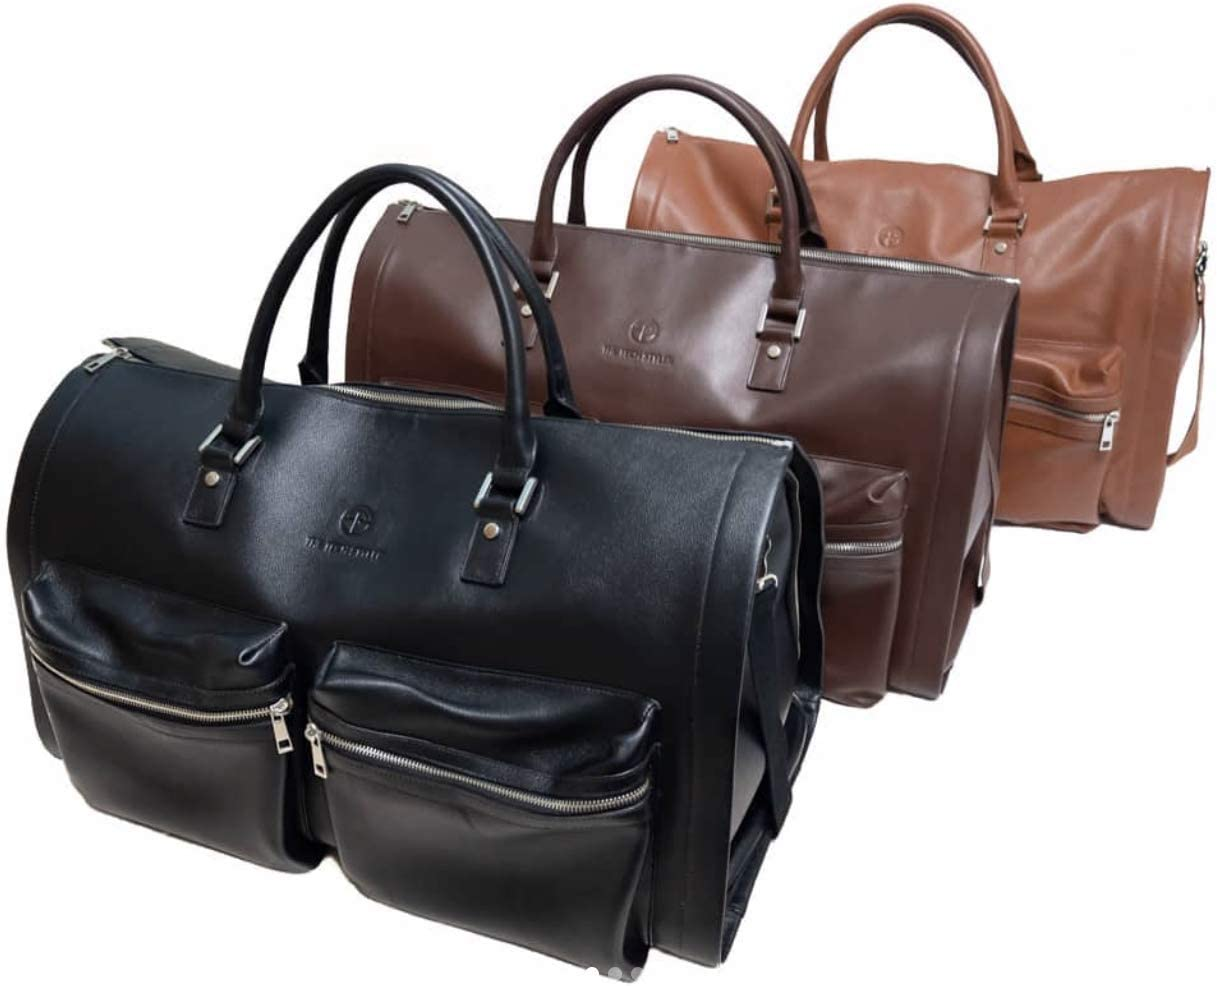 Convertible Overnight Bag 3 Classic Colors 2